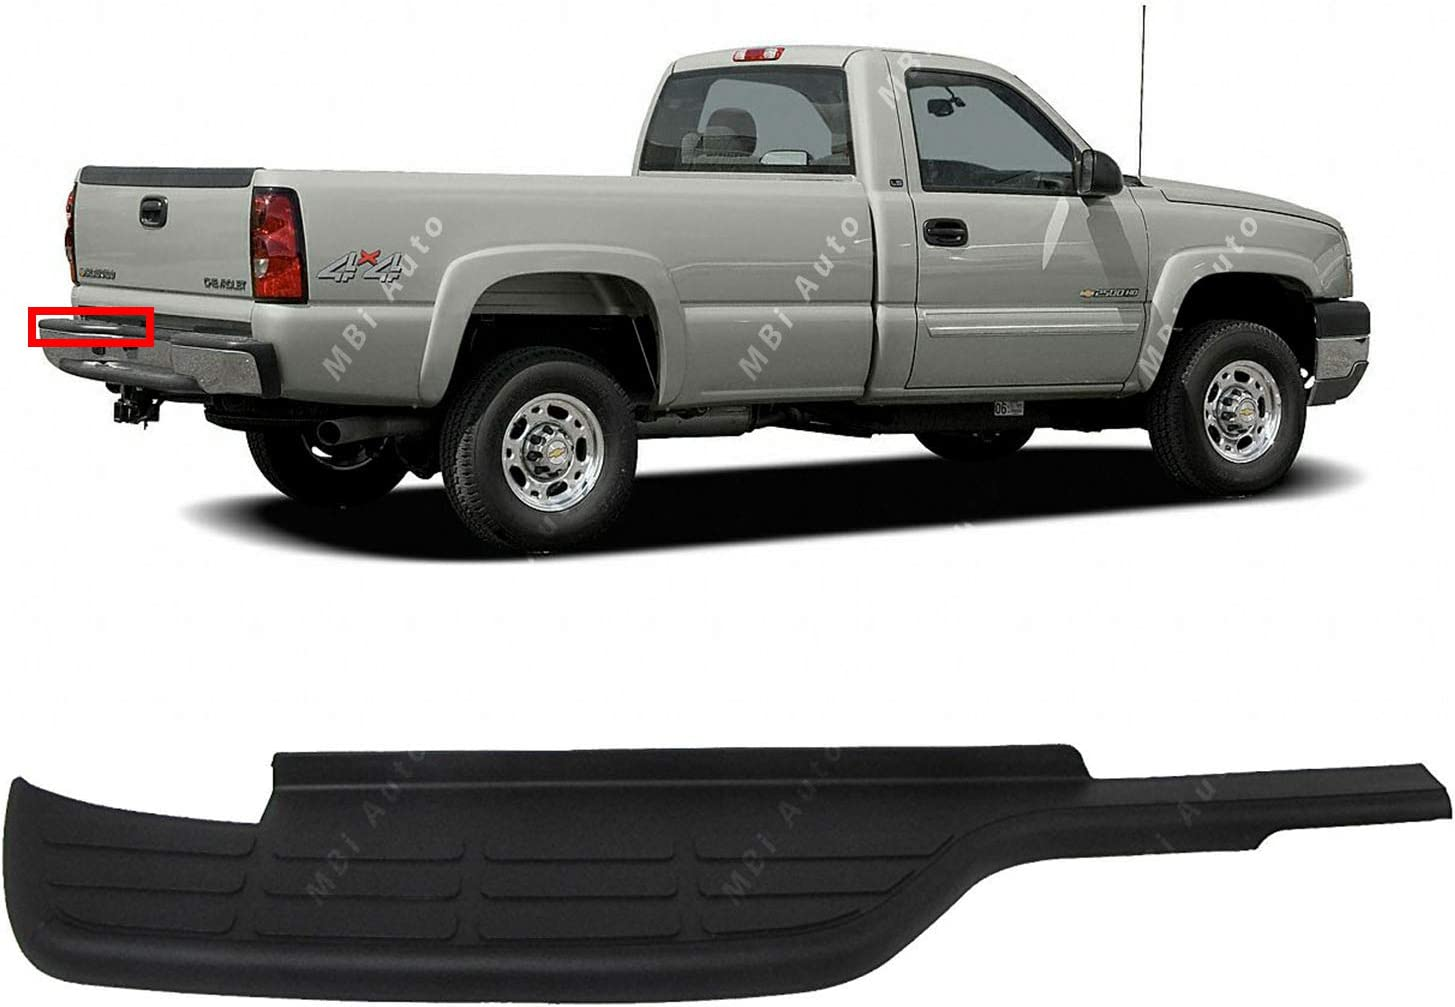 Center Black Bumper Step Pad For GMC Sierra 1500 Classic 2007 New Rear